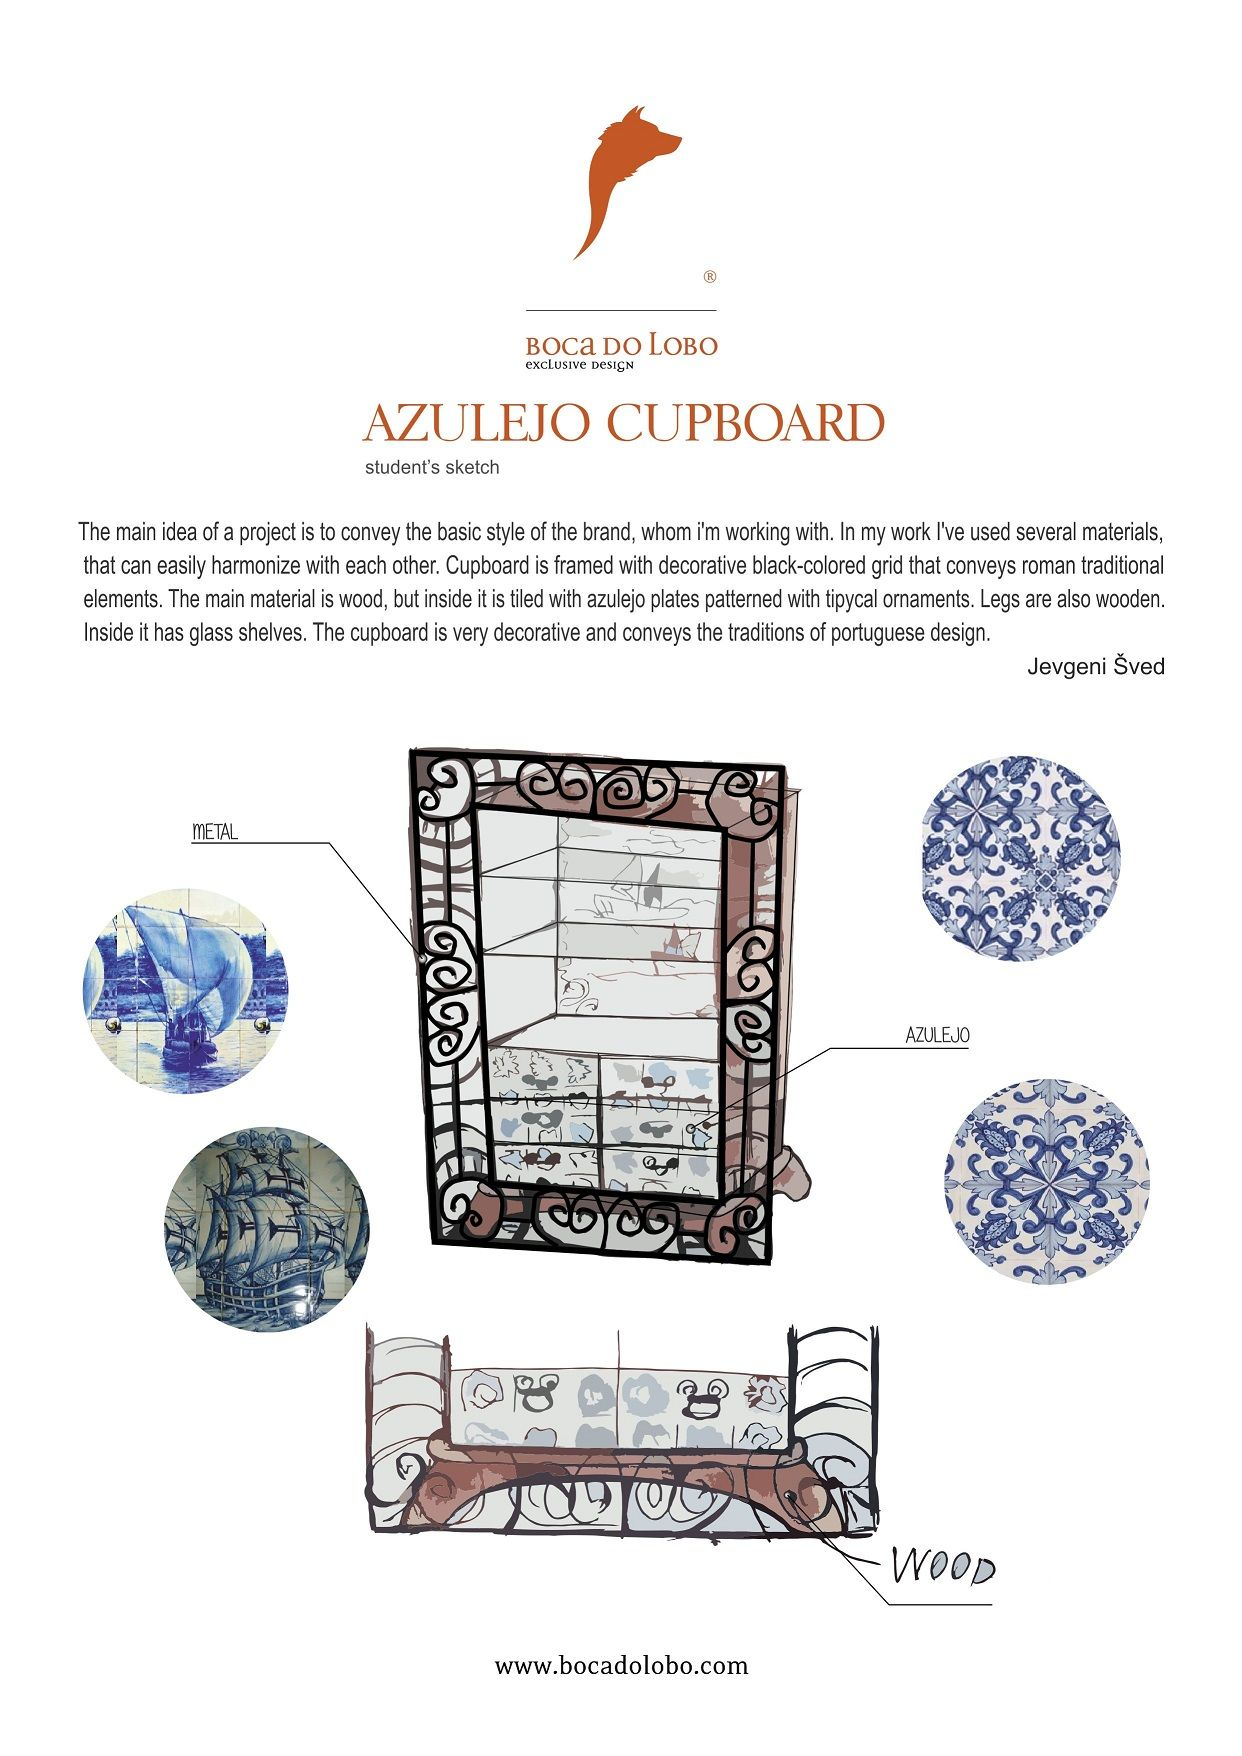 #IDEA #3, #JevgeniSvedBOCADOLOBO,   Third idea:  AZULEJO CUPBOARD